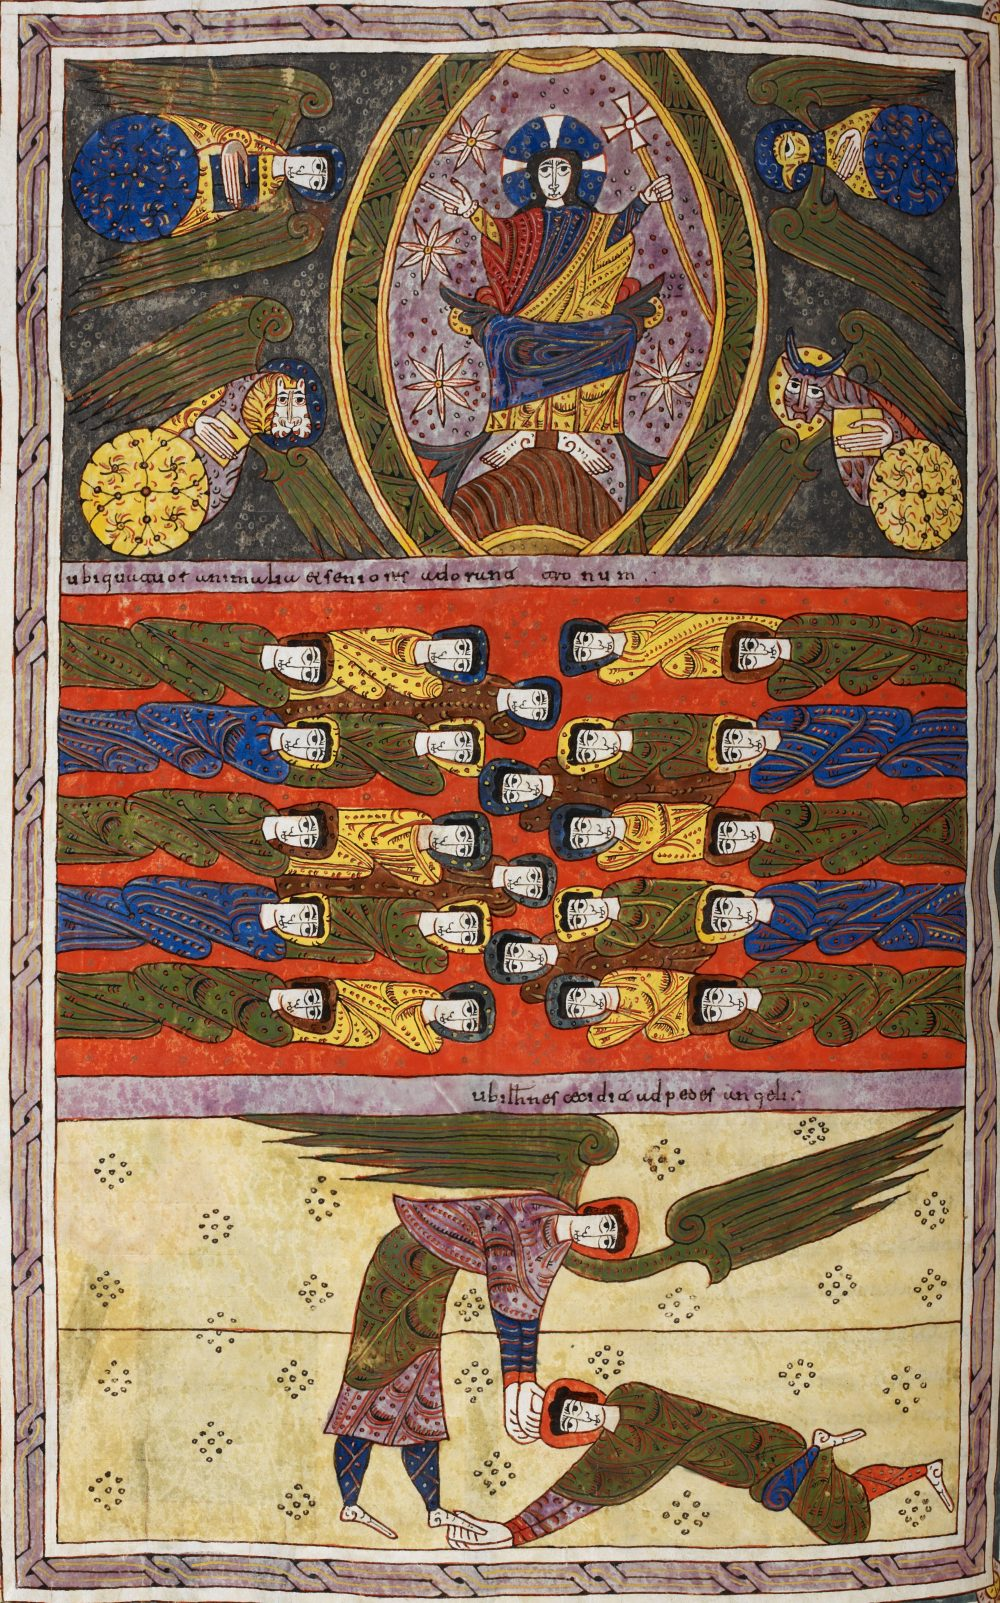 Beatus de Silos 1109 fol 194v Apocalypse 19,1-9 Folio-194v-British Library Add.11695